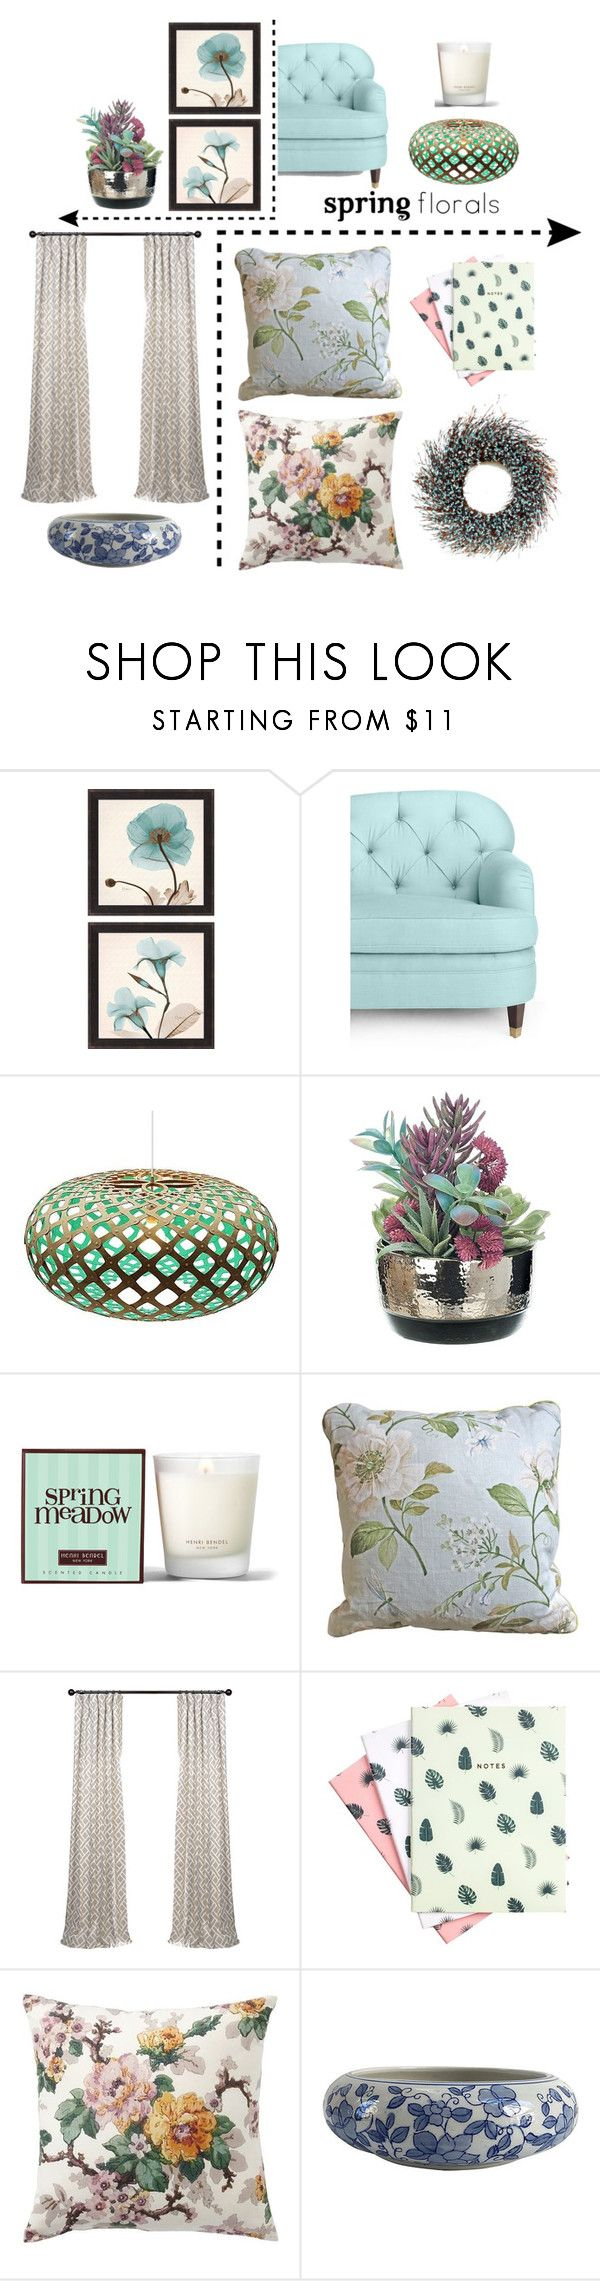 """""""Make Your Home Bloom"""" by vale14m ❤ liked on Polyvore featuring interior, interiors, interior design, home, home decor, interior decorating, Kate Spade, David Trubridge, Henri Bendel and Hadron Epoch"""